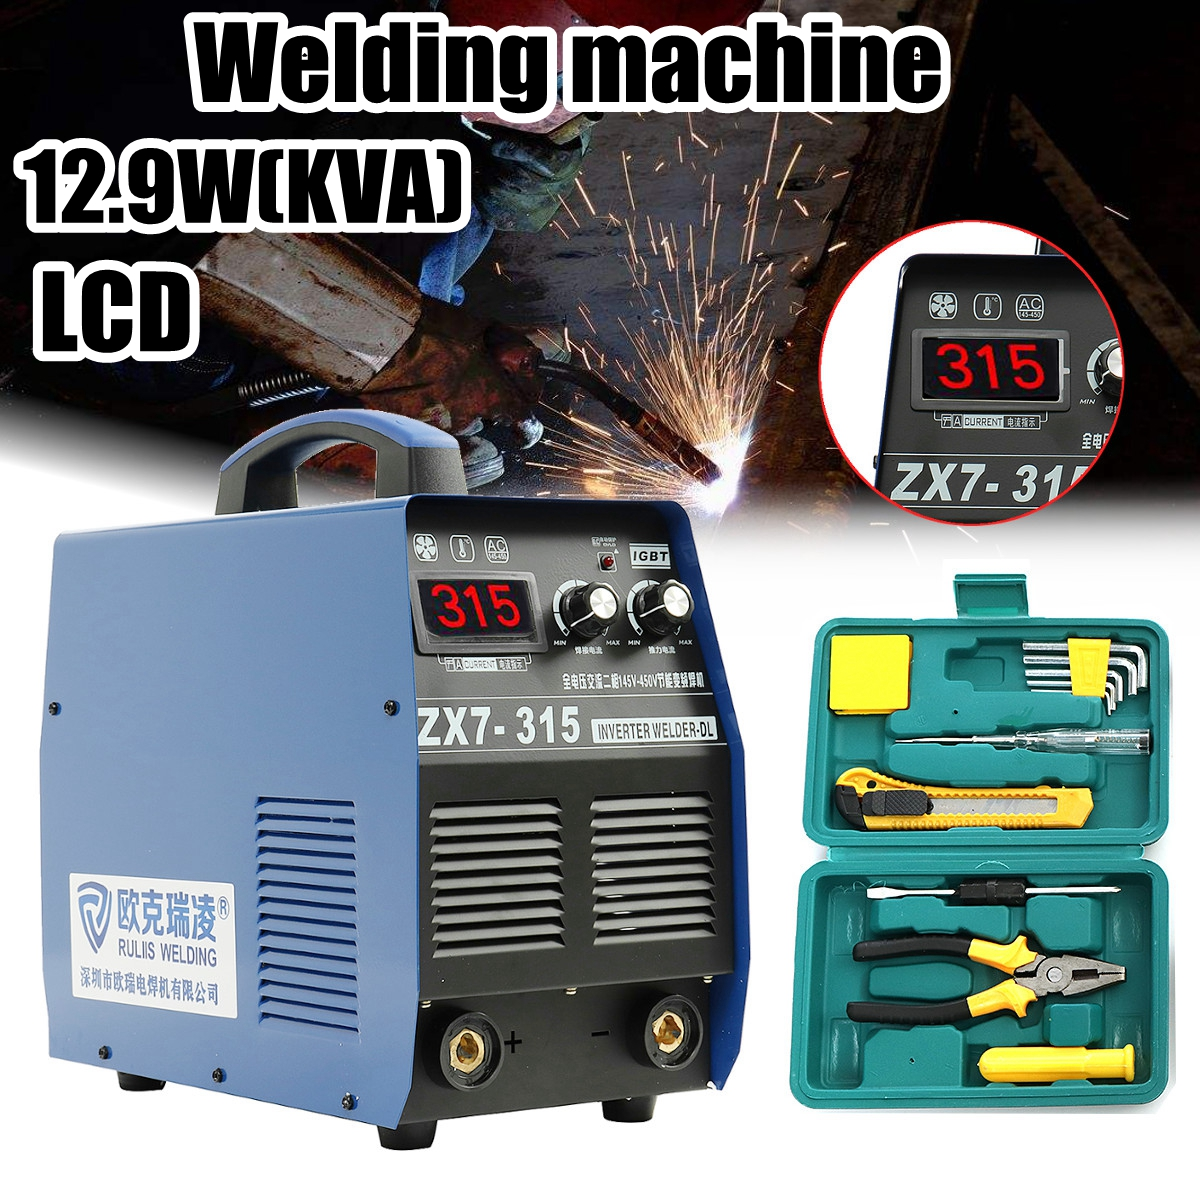 12.9W Welding Inverter Machine Tool MMA/ARC Portable Welder 220V/380V DC IGBT Single tube IGBT LCD inverter welder цена